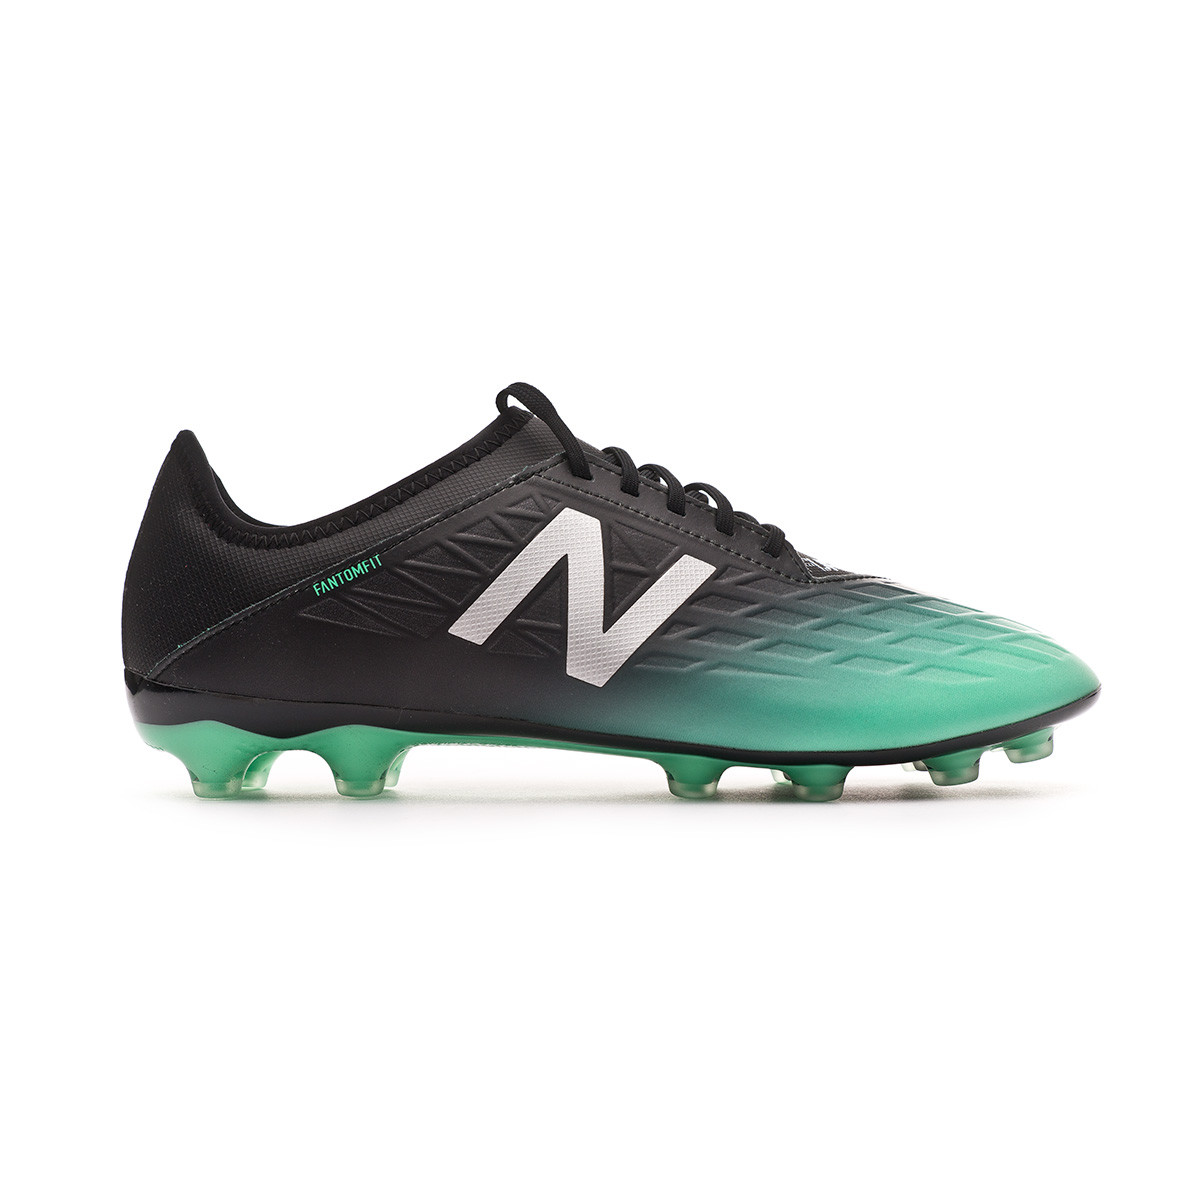 4ed3f74d0fa90 Football Boots New Balance Furon v5 Destroy AG Neon emerald-Black -  Football store Fútbol Emotion